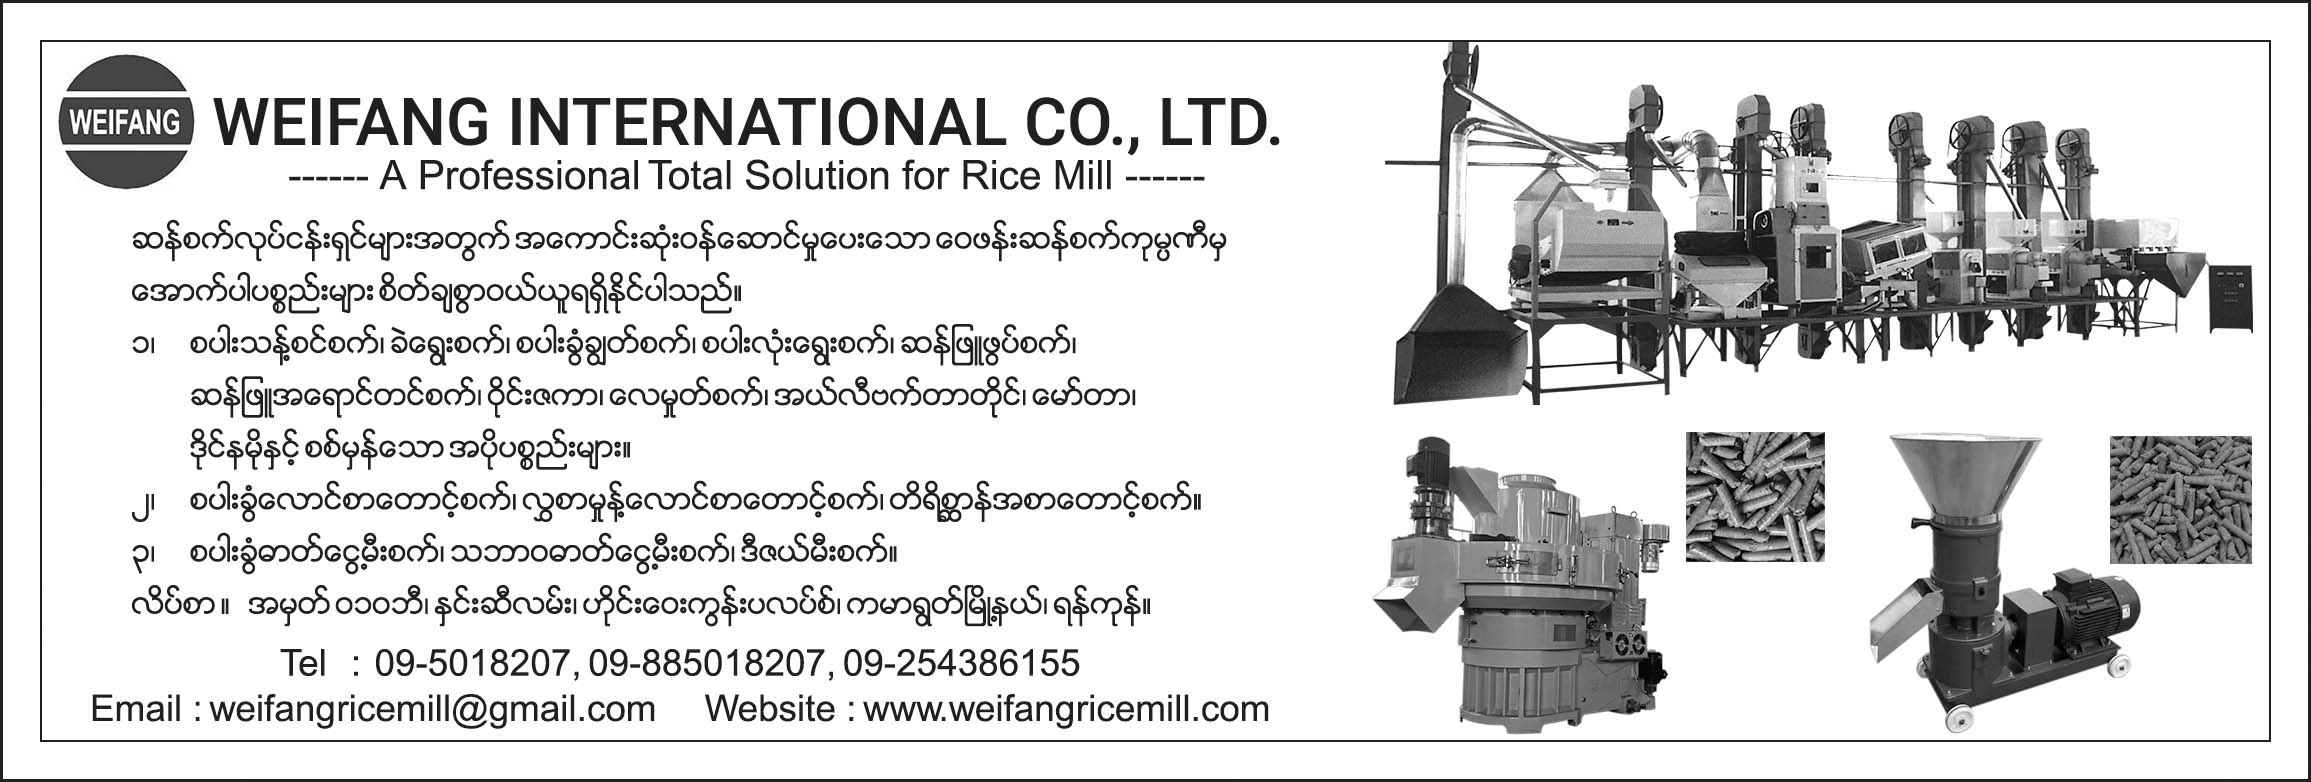 Weifang International Co.,Ltd